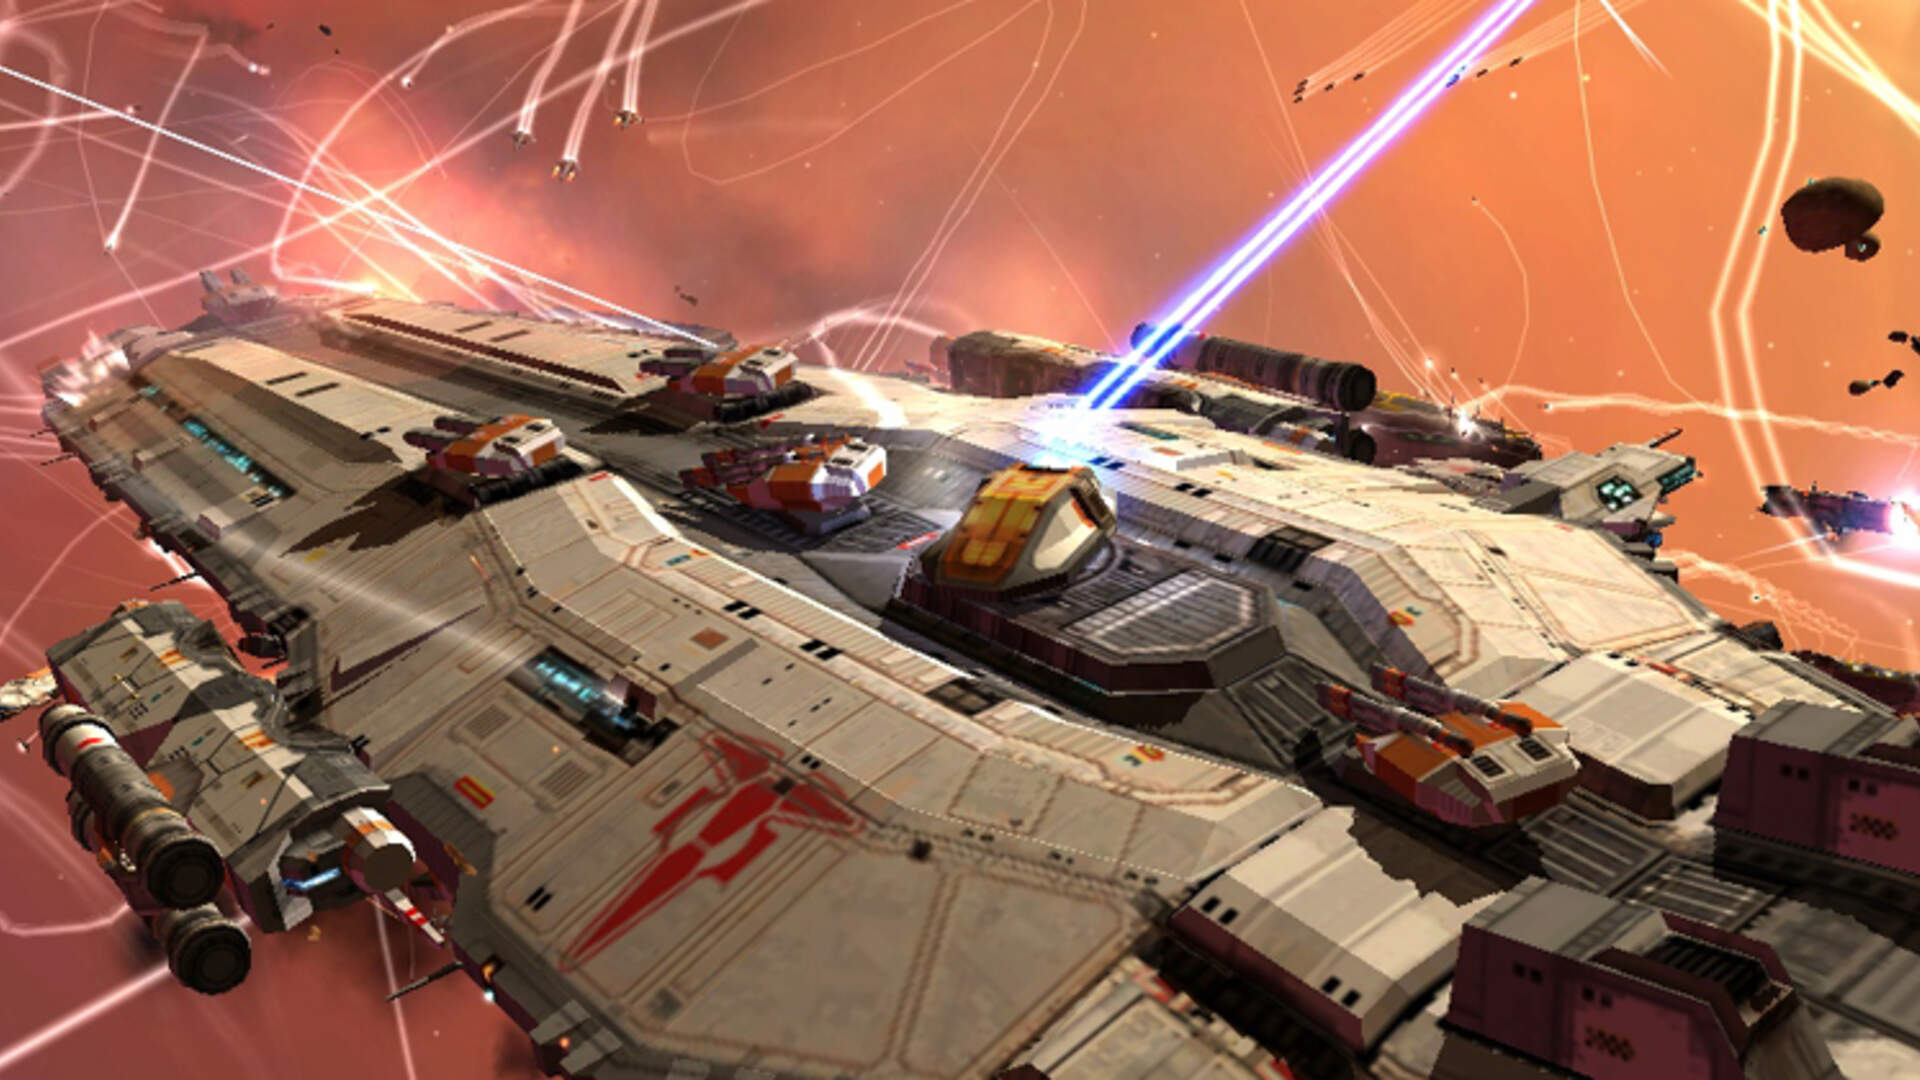 Homeworld Remastered Collection Review: The Return of an Underrated Classic